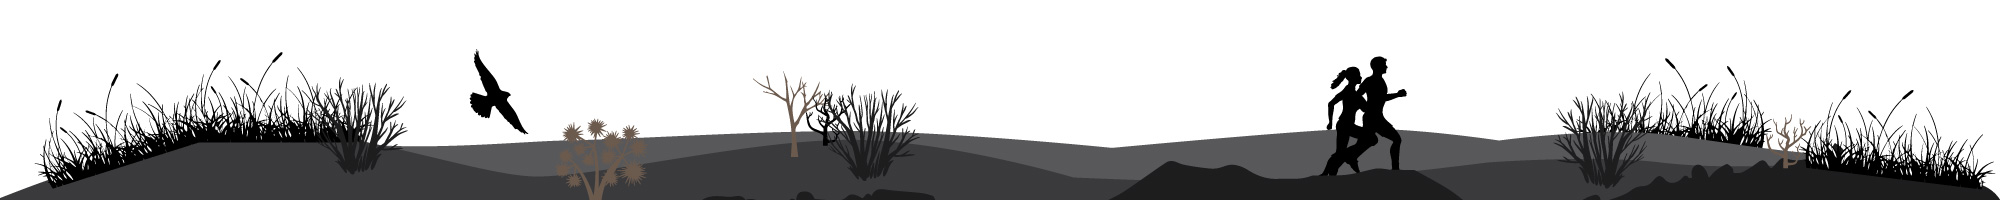 Runners Uplands Cowiche Canyon Conservancy Recreation Hiking Shrub-Steppe Illustration